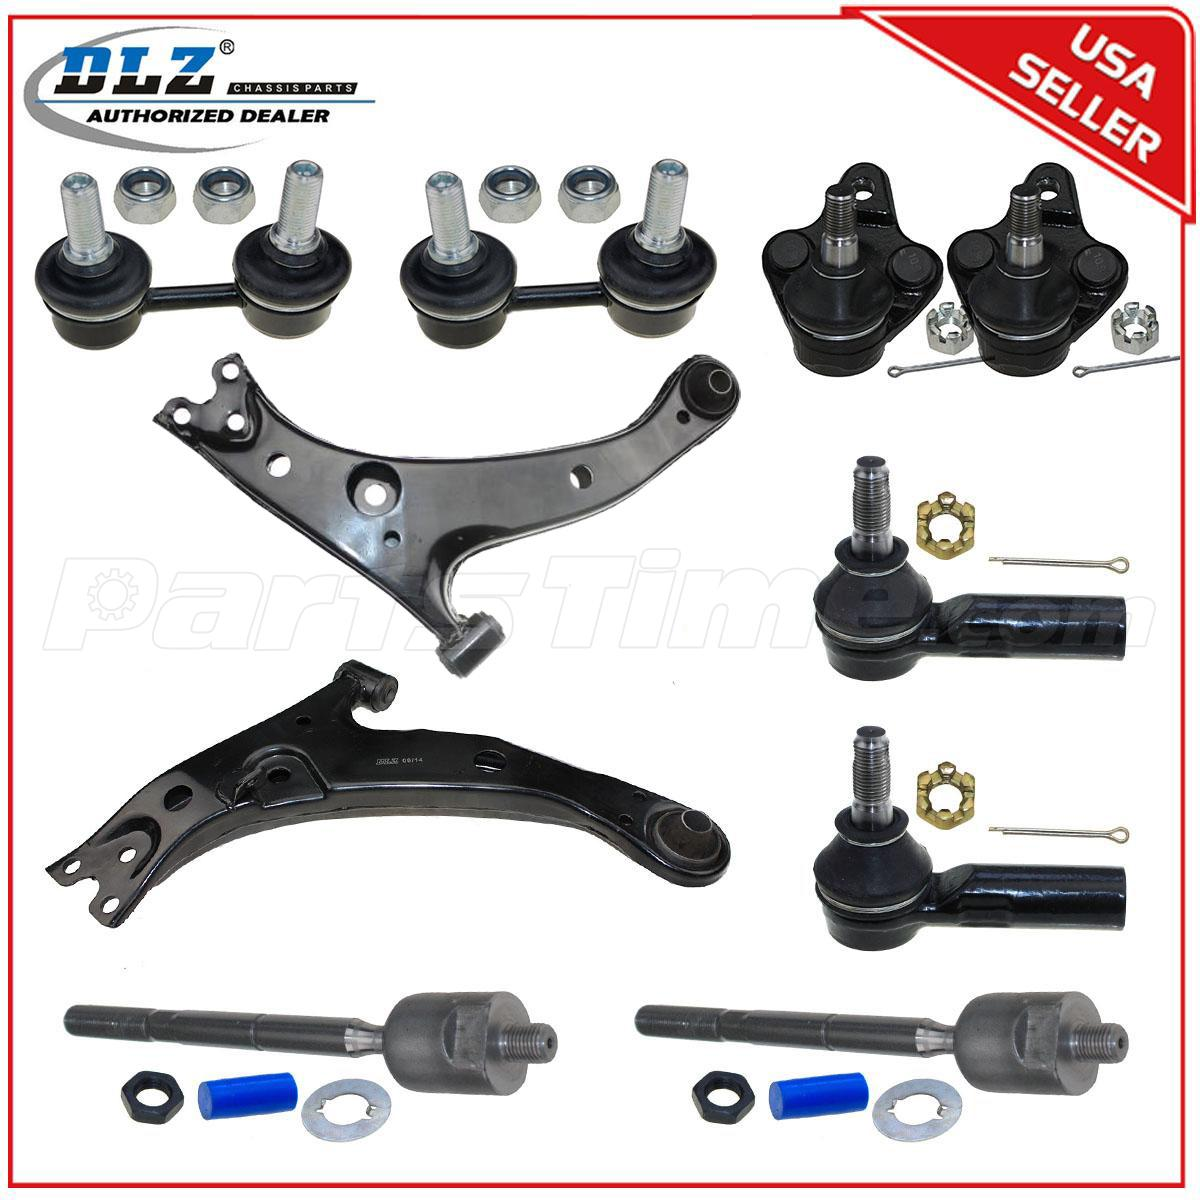 10 Piece Suspension Set For 1996-2002 TOYOTA COROLLA